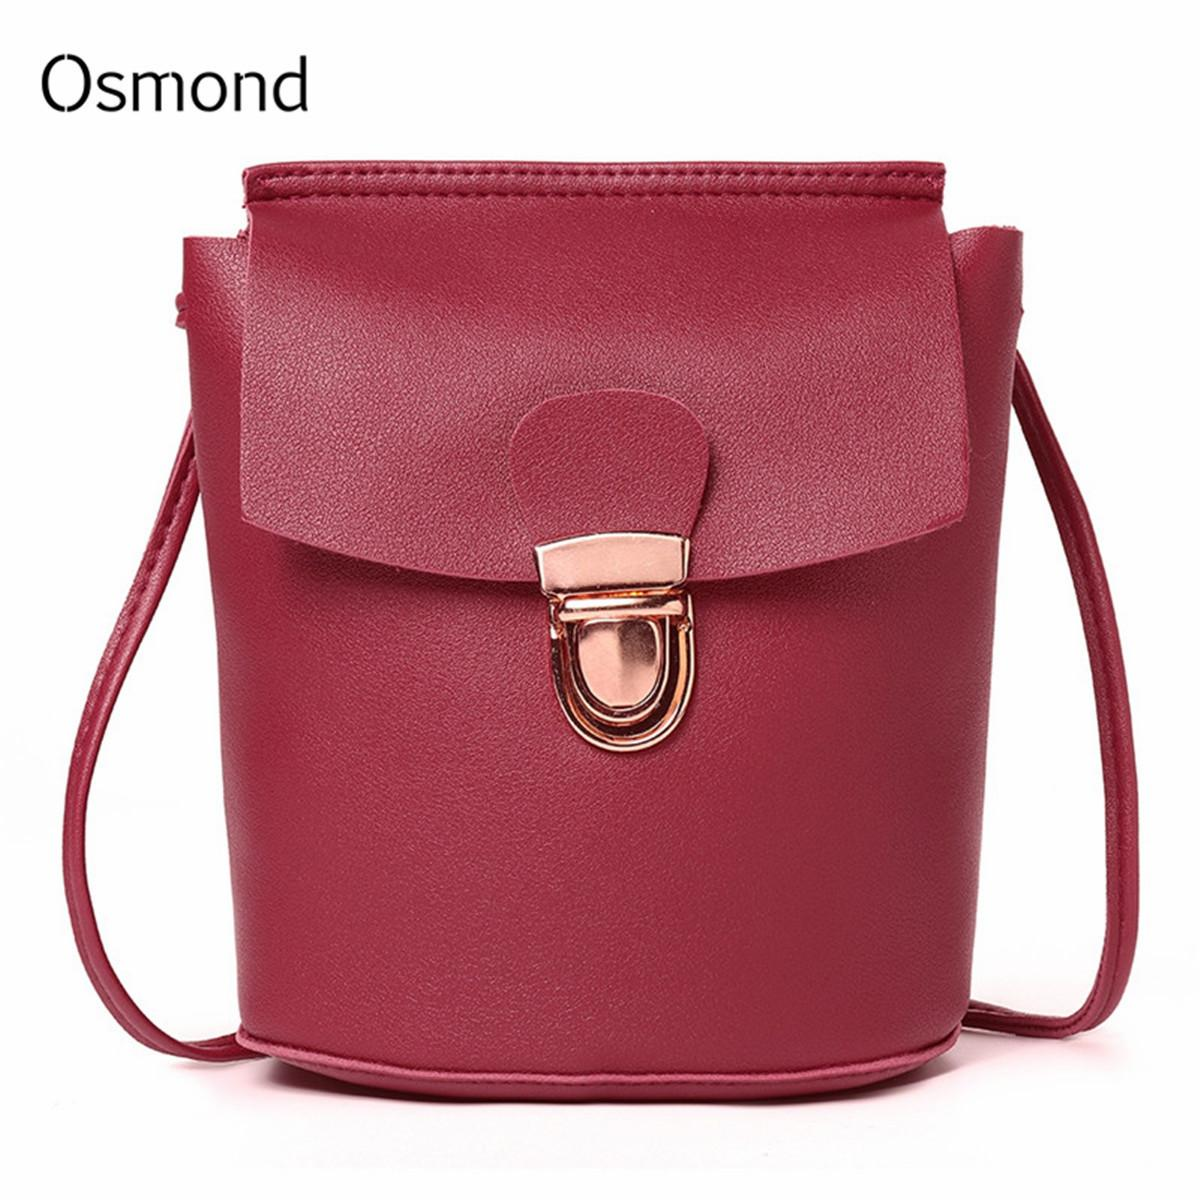 a23bb767d2 Cheap Fashion Crossbody Bags For Women 2019 New Korean Style Mini Hand Bag  Bucket Lock Student Shoulder Bag PU Leather Girls Messenger Bags Shoulder  Bags ...